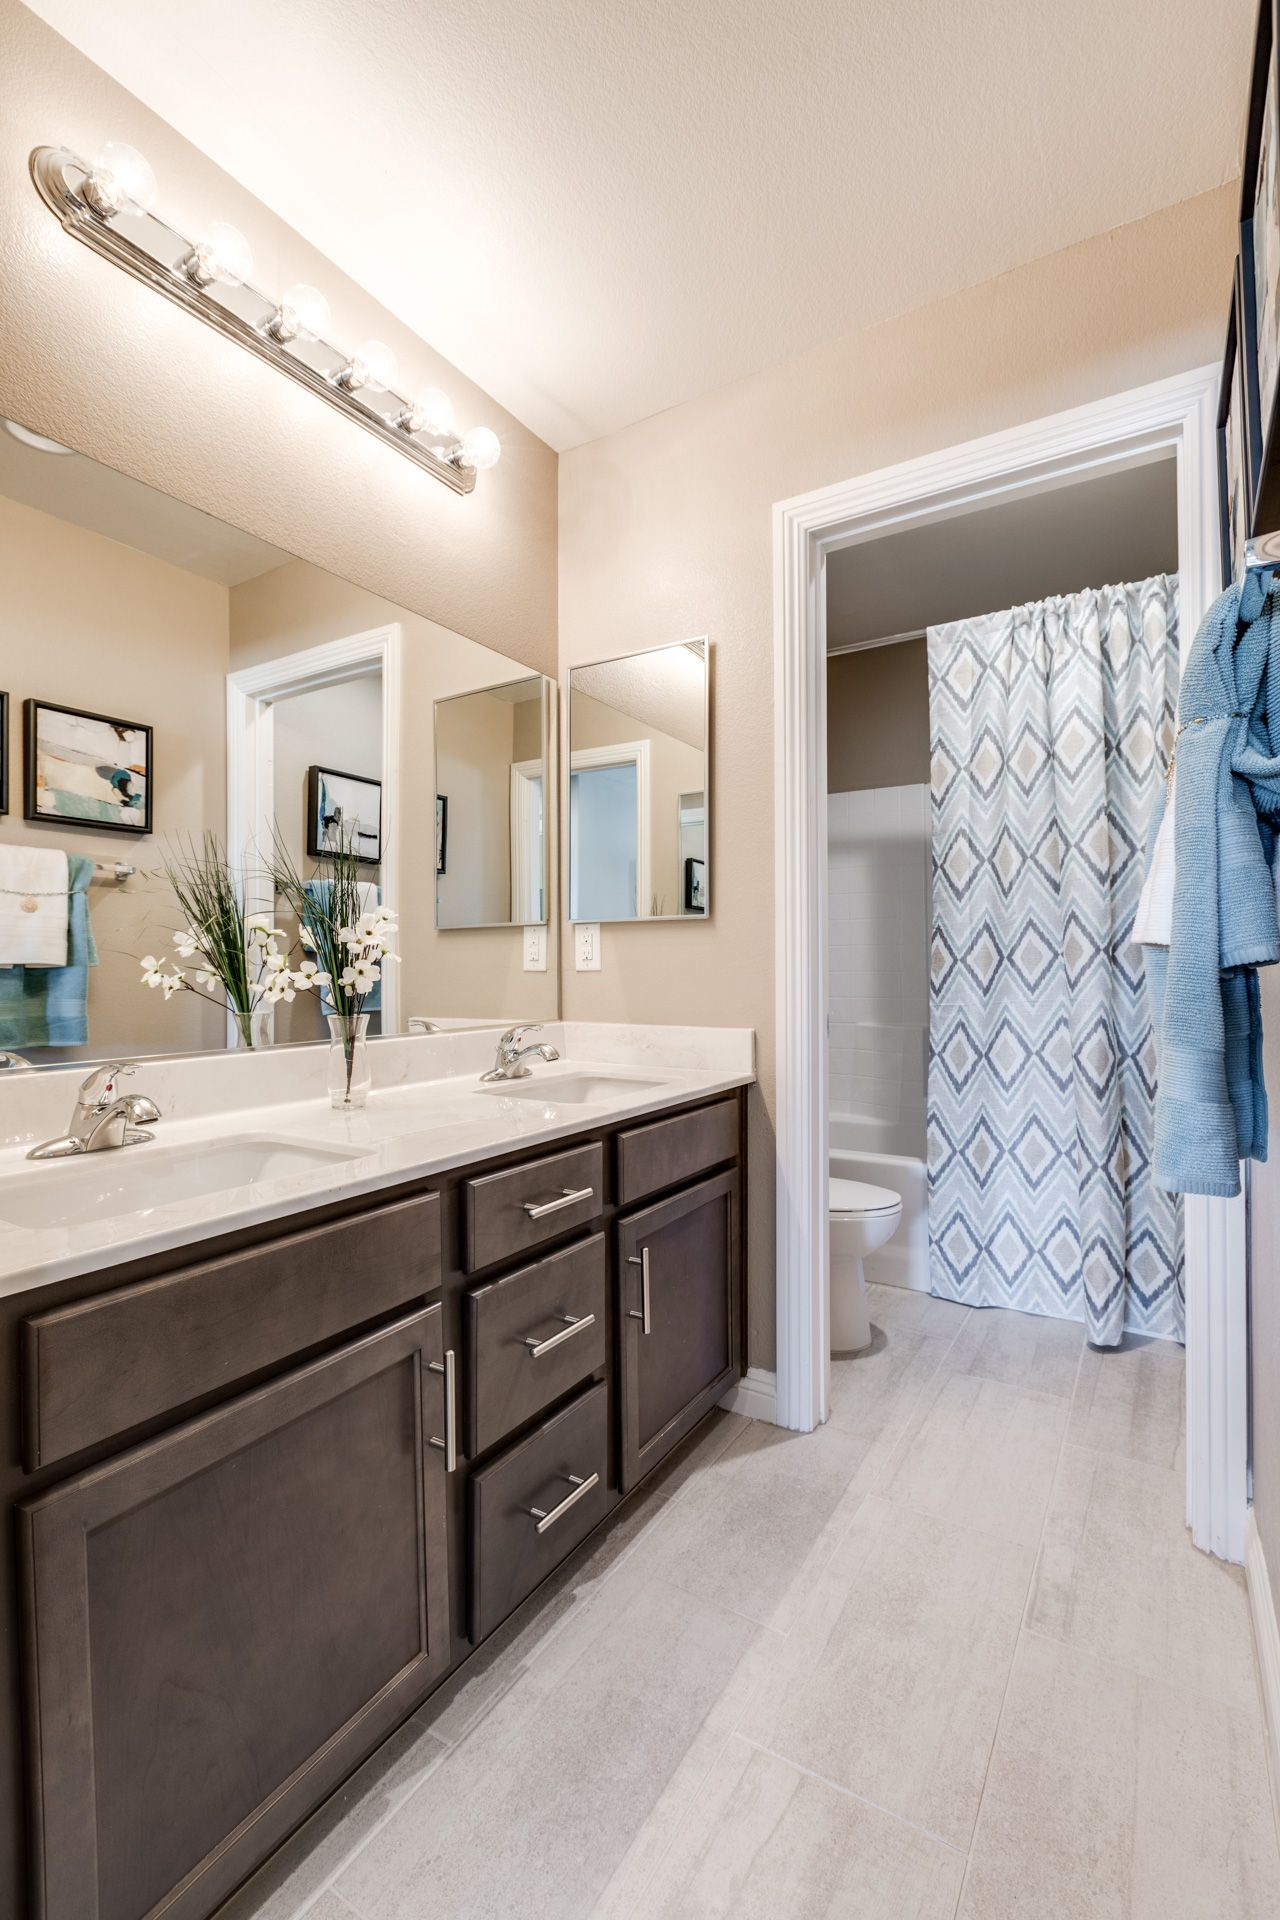 Bathroom featured in the Residence 2370 By Harmony Homes - Las Vegas in Las Vegas, NV